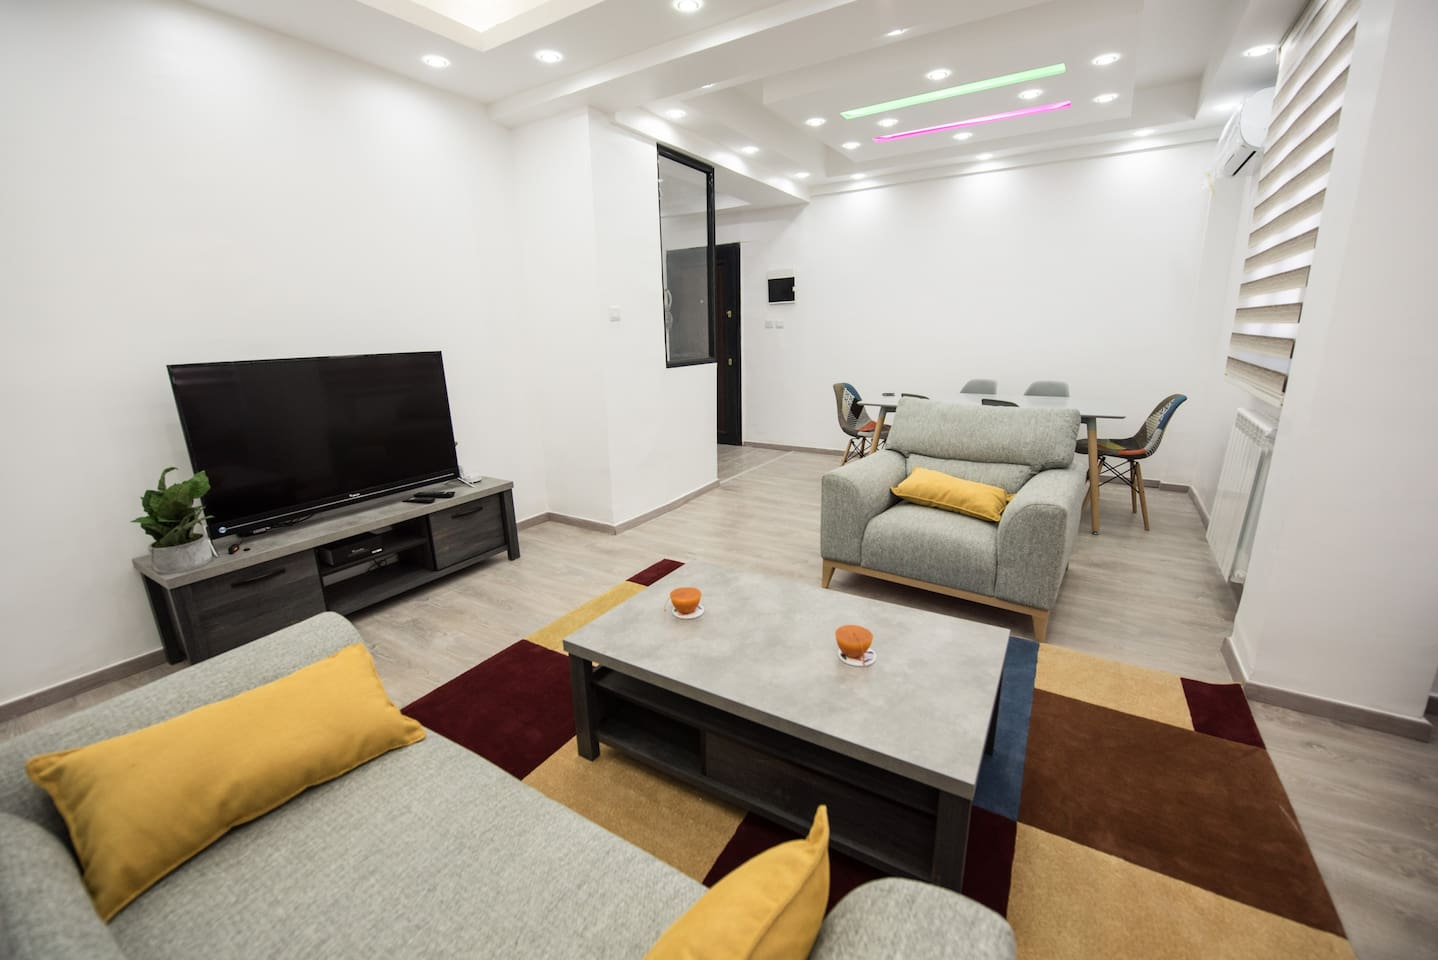 Comfortable 6 places living room with modern Dining table.   A/C, parquet floor, smart TV and satellite receiver, central heating.